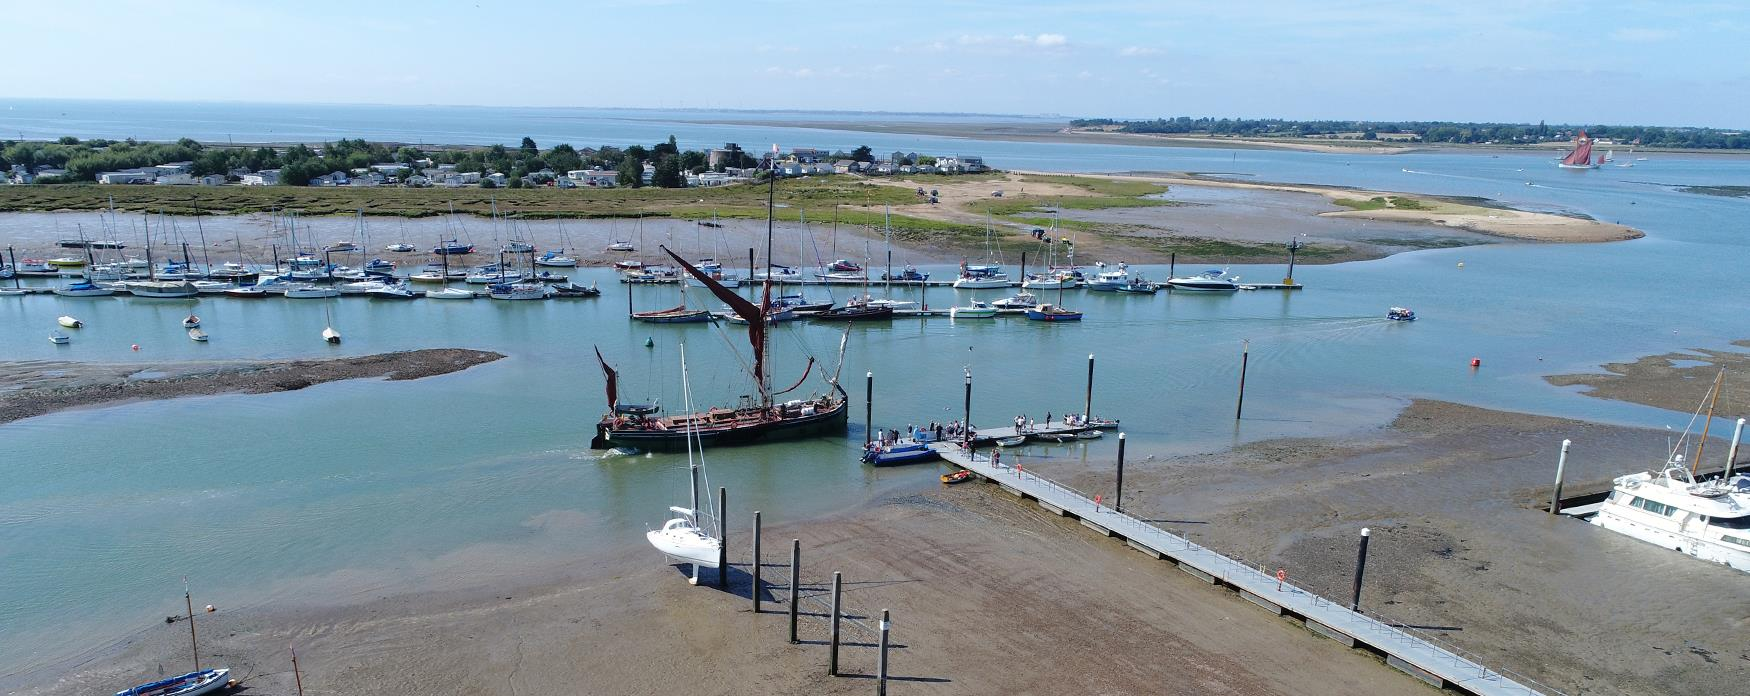 Brightlingsea town jetty with boats